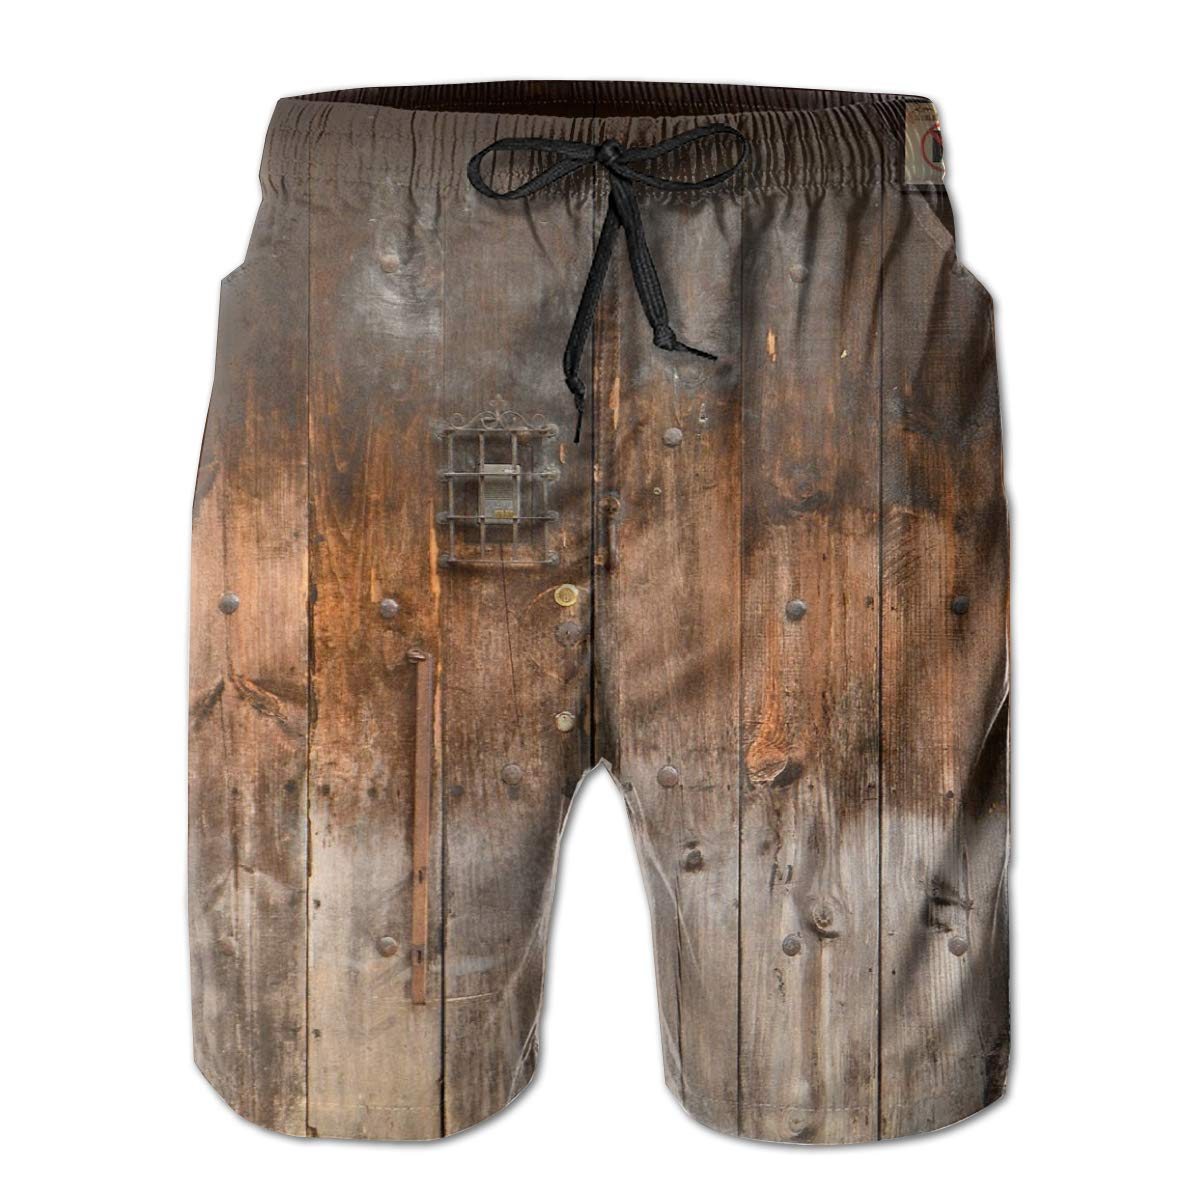 Swim Trunks Summer Beach Shorts Pockets Boardshorts for Men Youth Boys Saxophone in Fire and Water